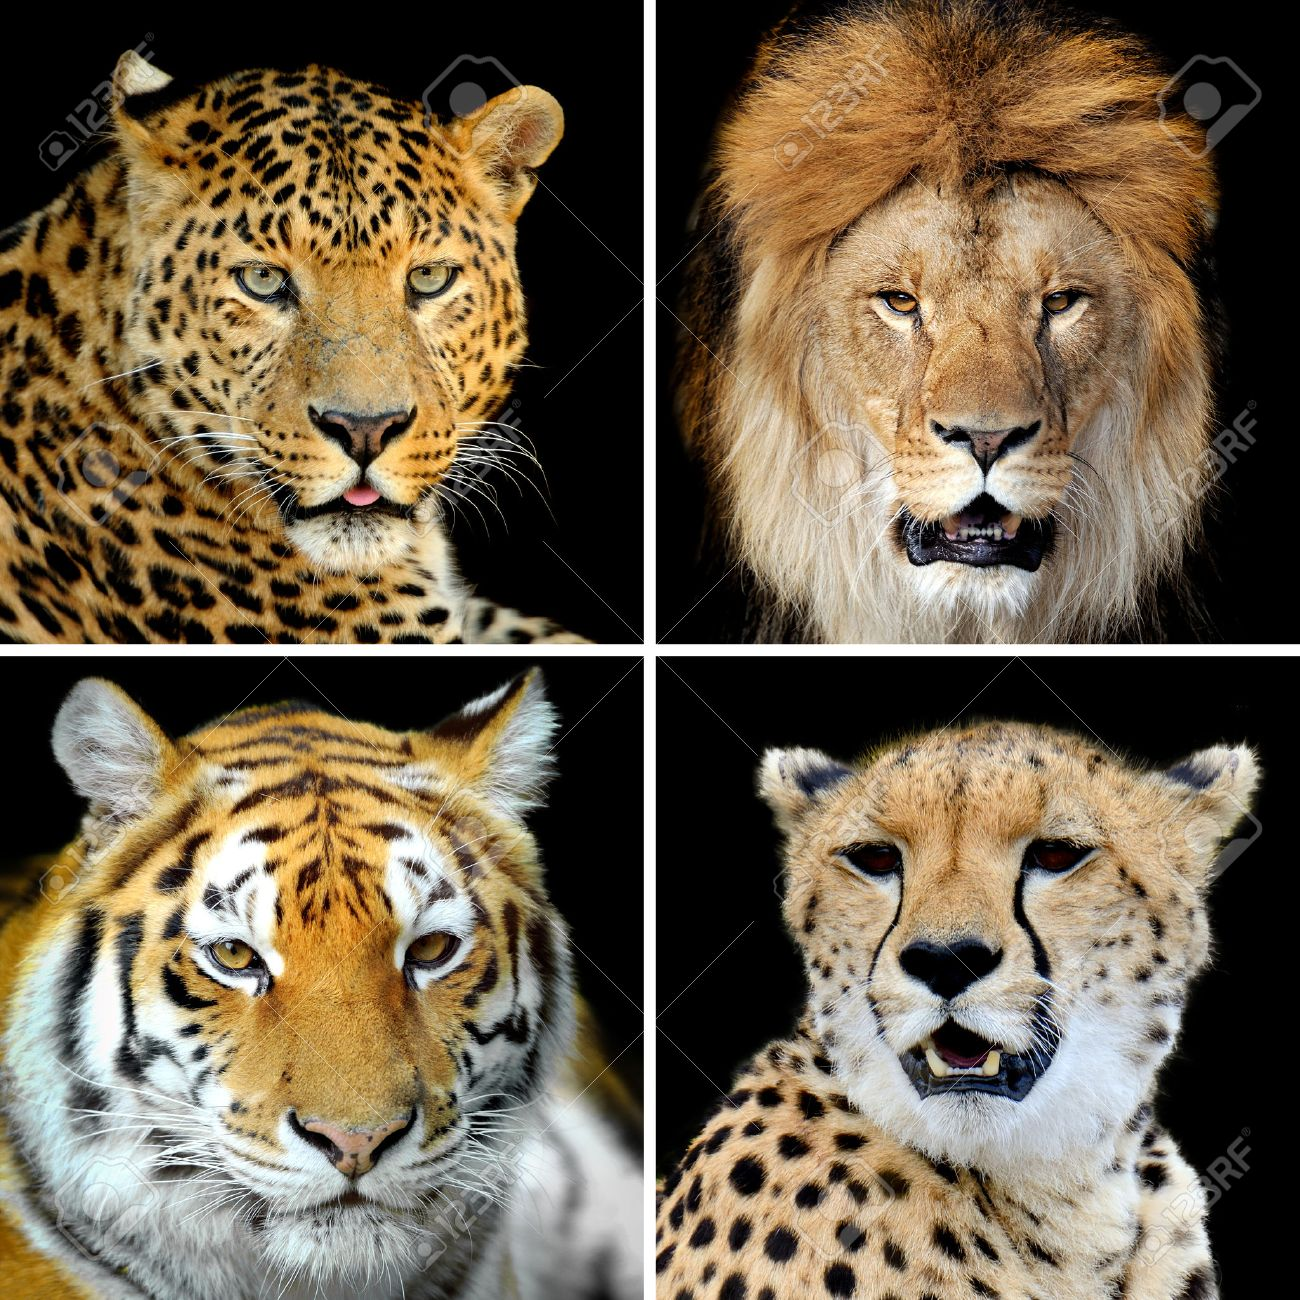 Four Big Wild Cats Leopard Tiger Lion Cheetah Stock Photo Picture And Royalty Free Image Image 50822780